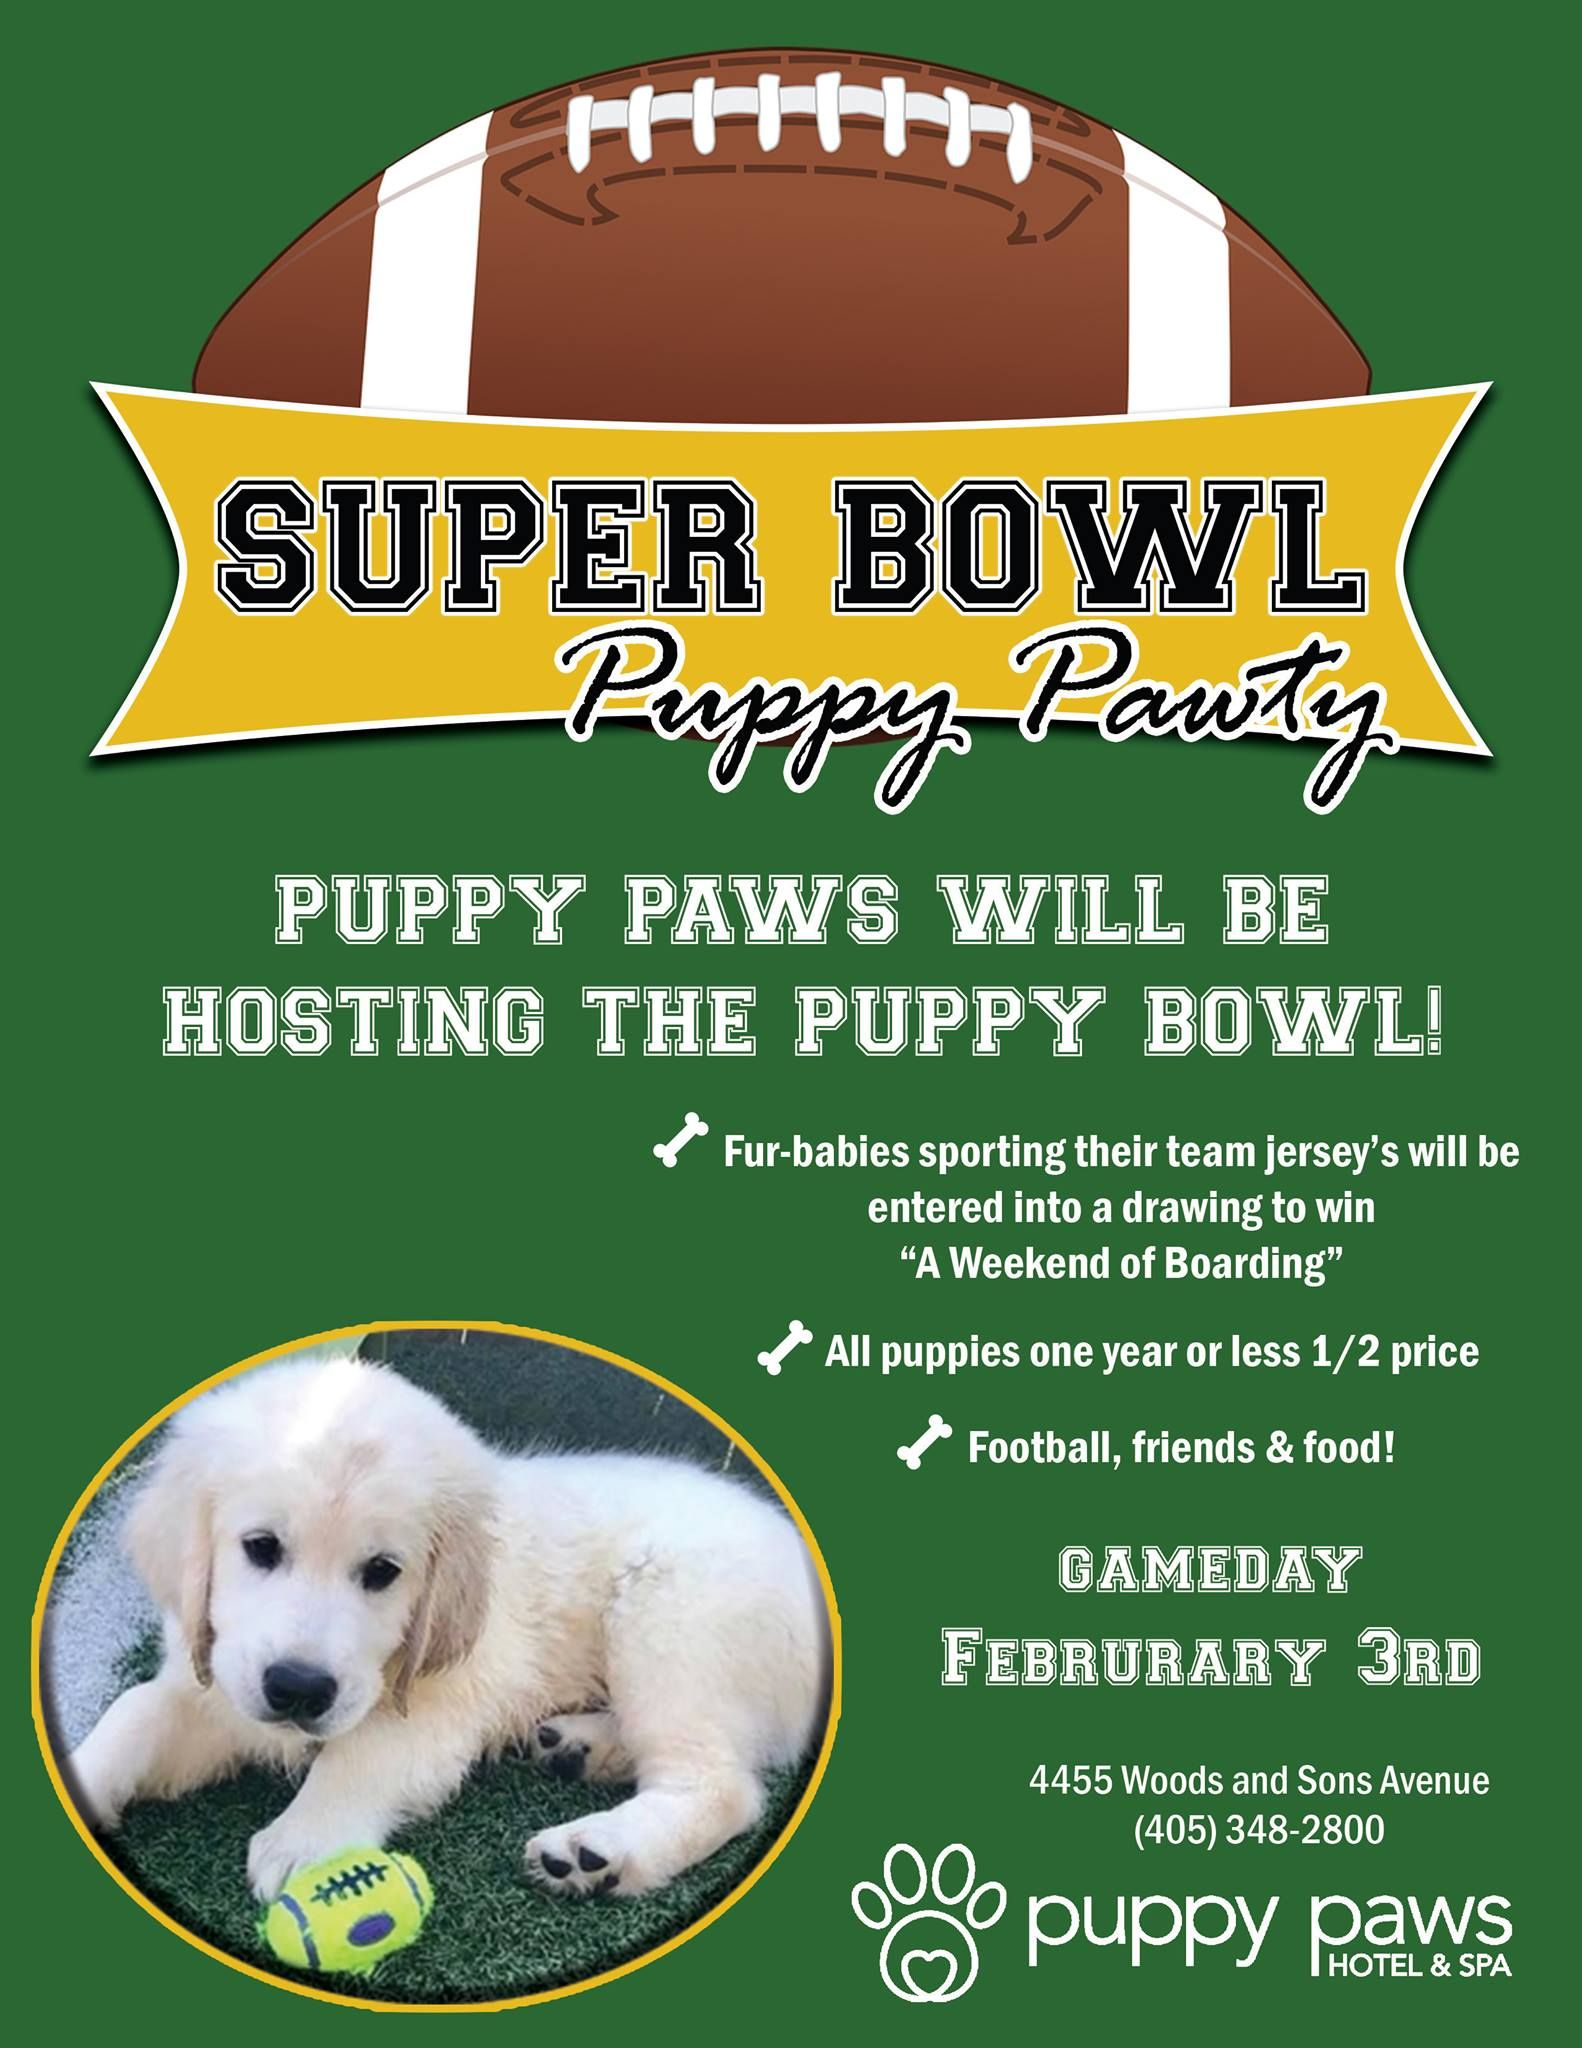 Puppy Bowl Puppy Bowls Dog Daycare Puppy Paws